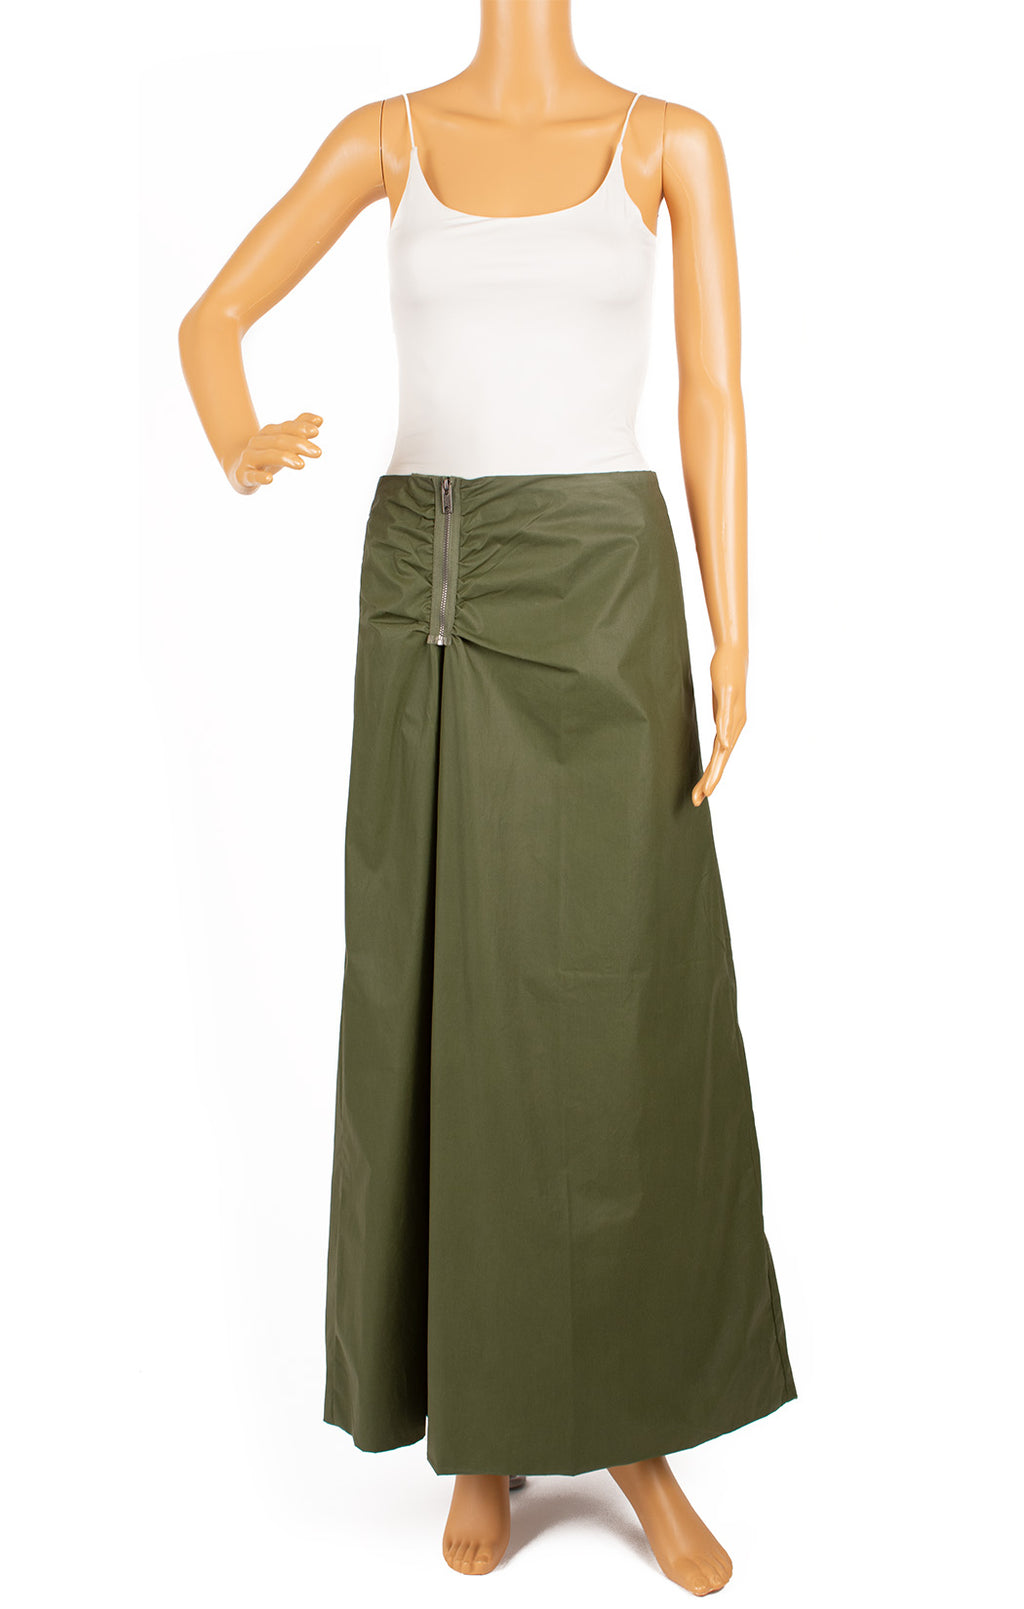 Front view of DIESEL Skirt (reversible) Size: 26 Waist